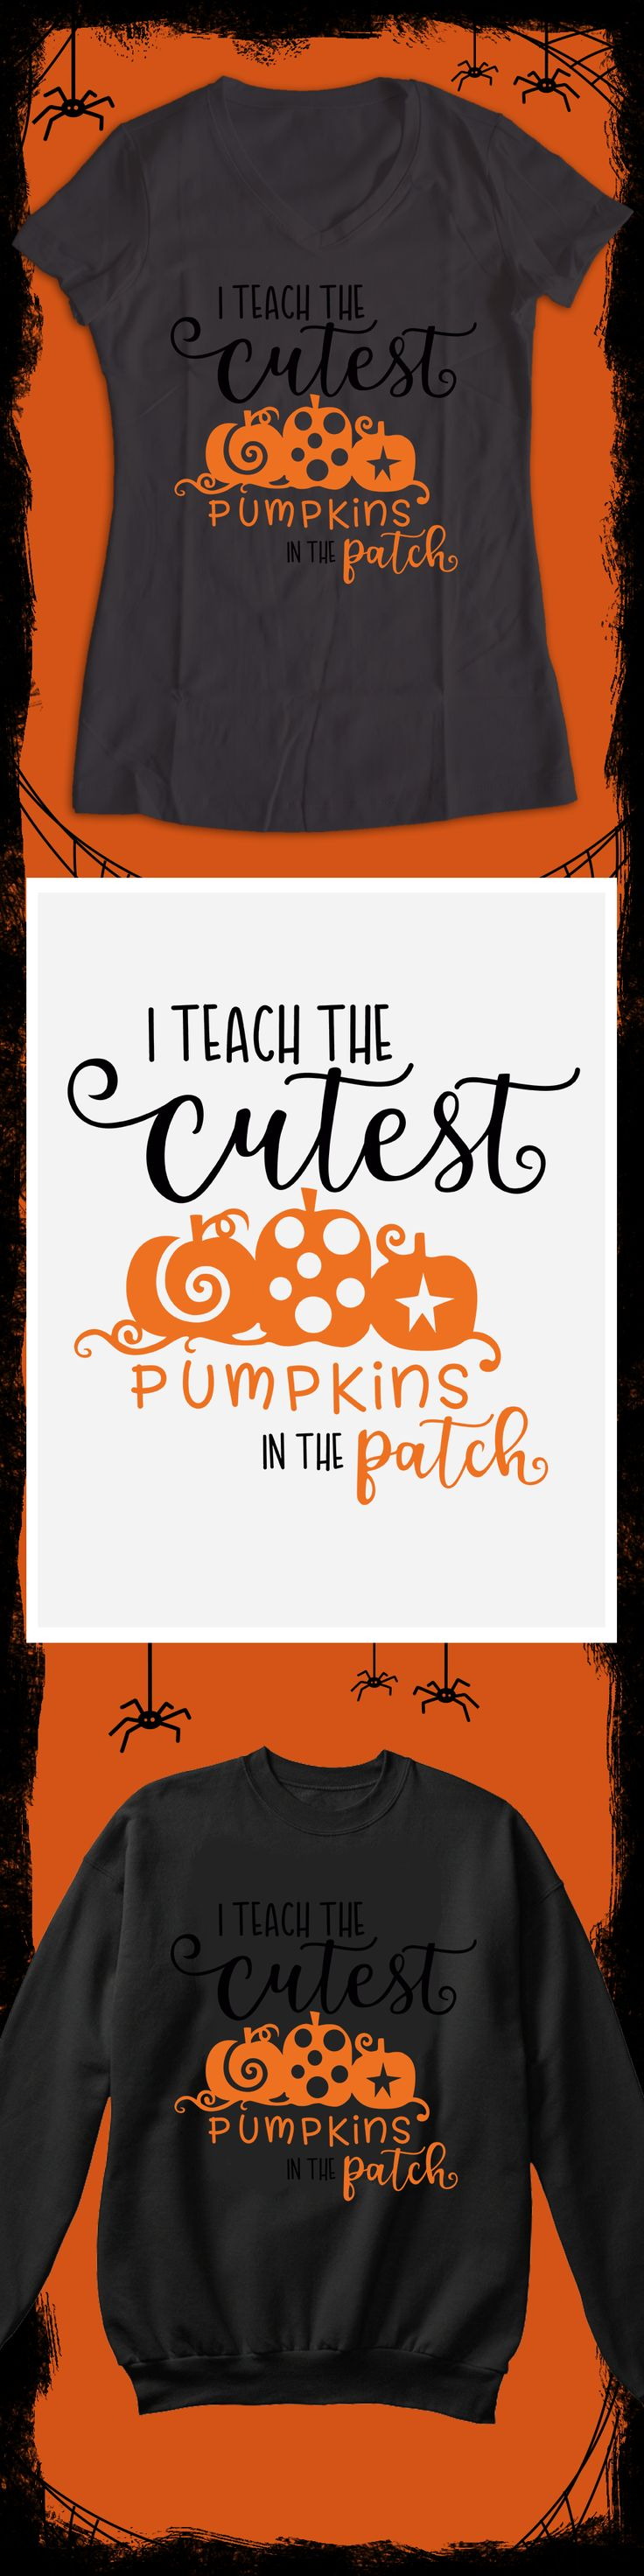 I Teach the Cutest Pumpkins in the Patch - Limited edition. Order 2 or more for friends/family & save on shipping! Makes a great gift!